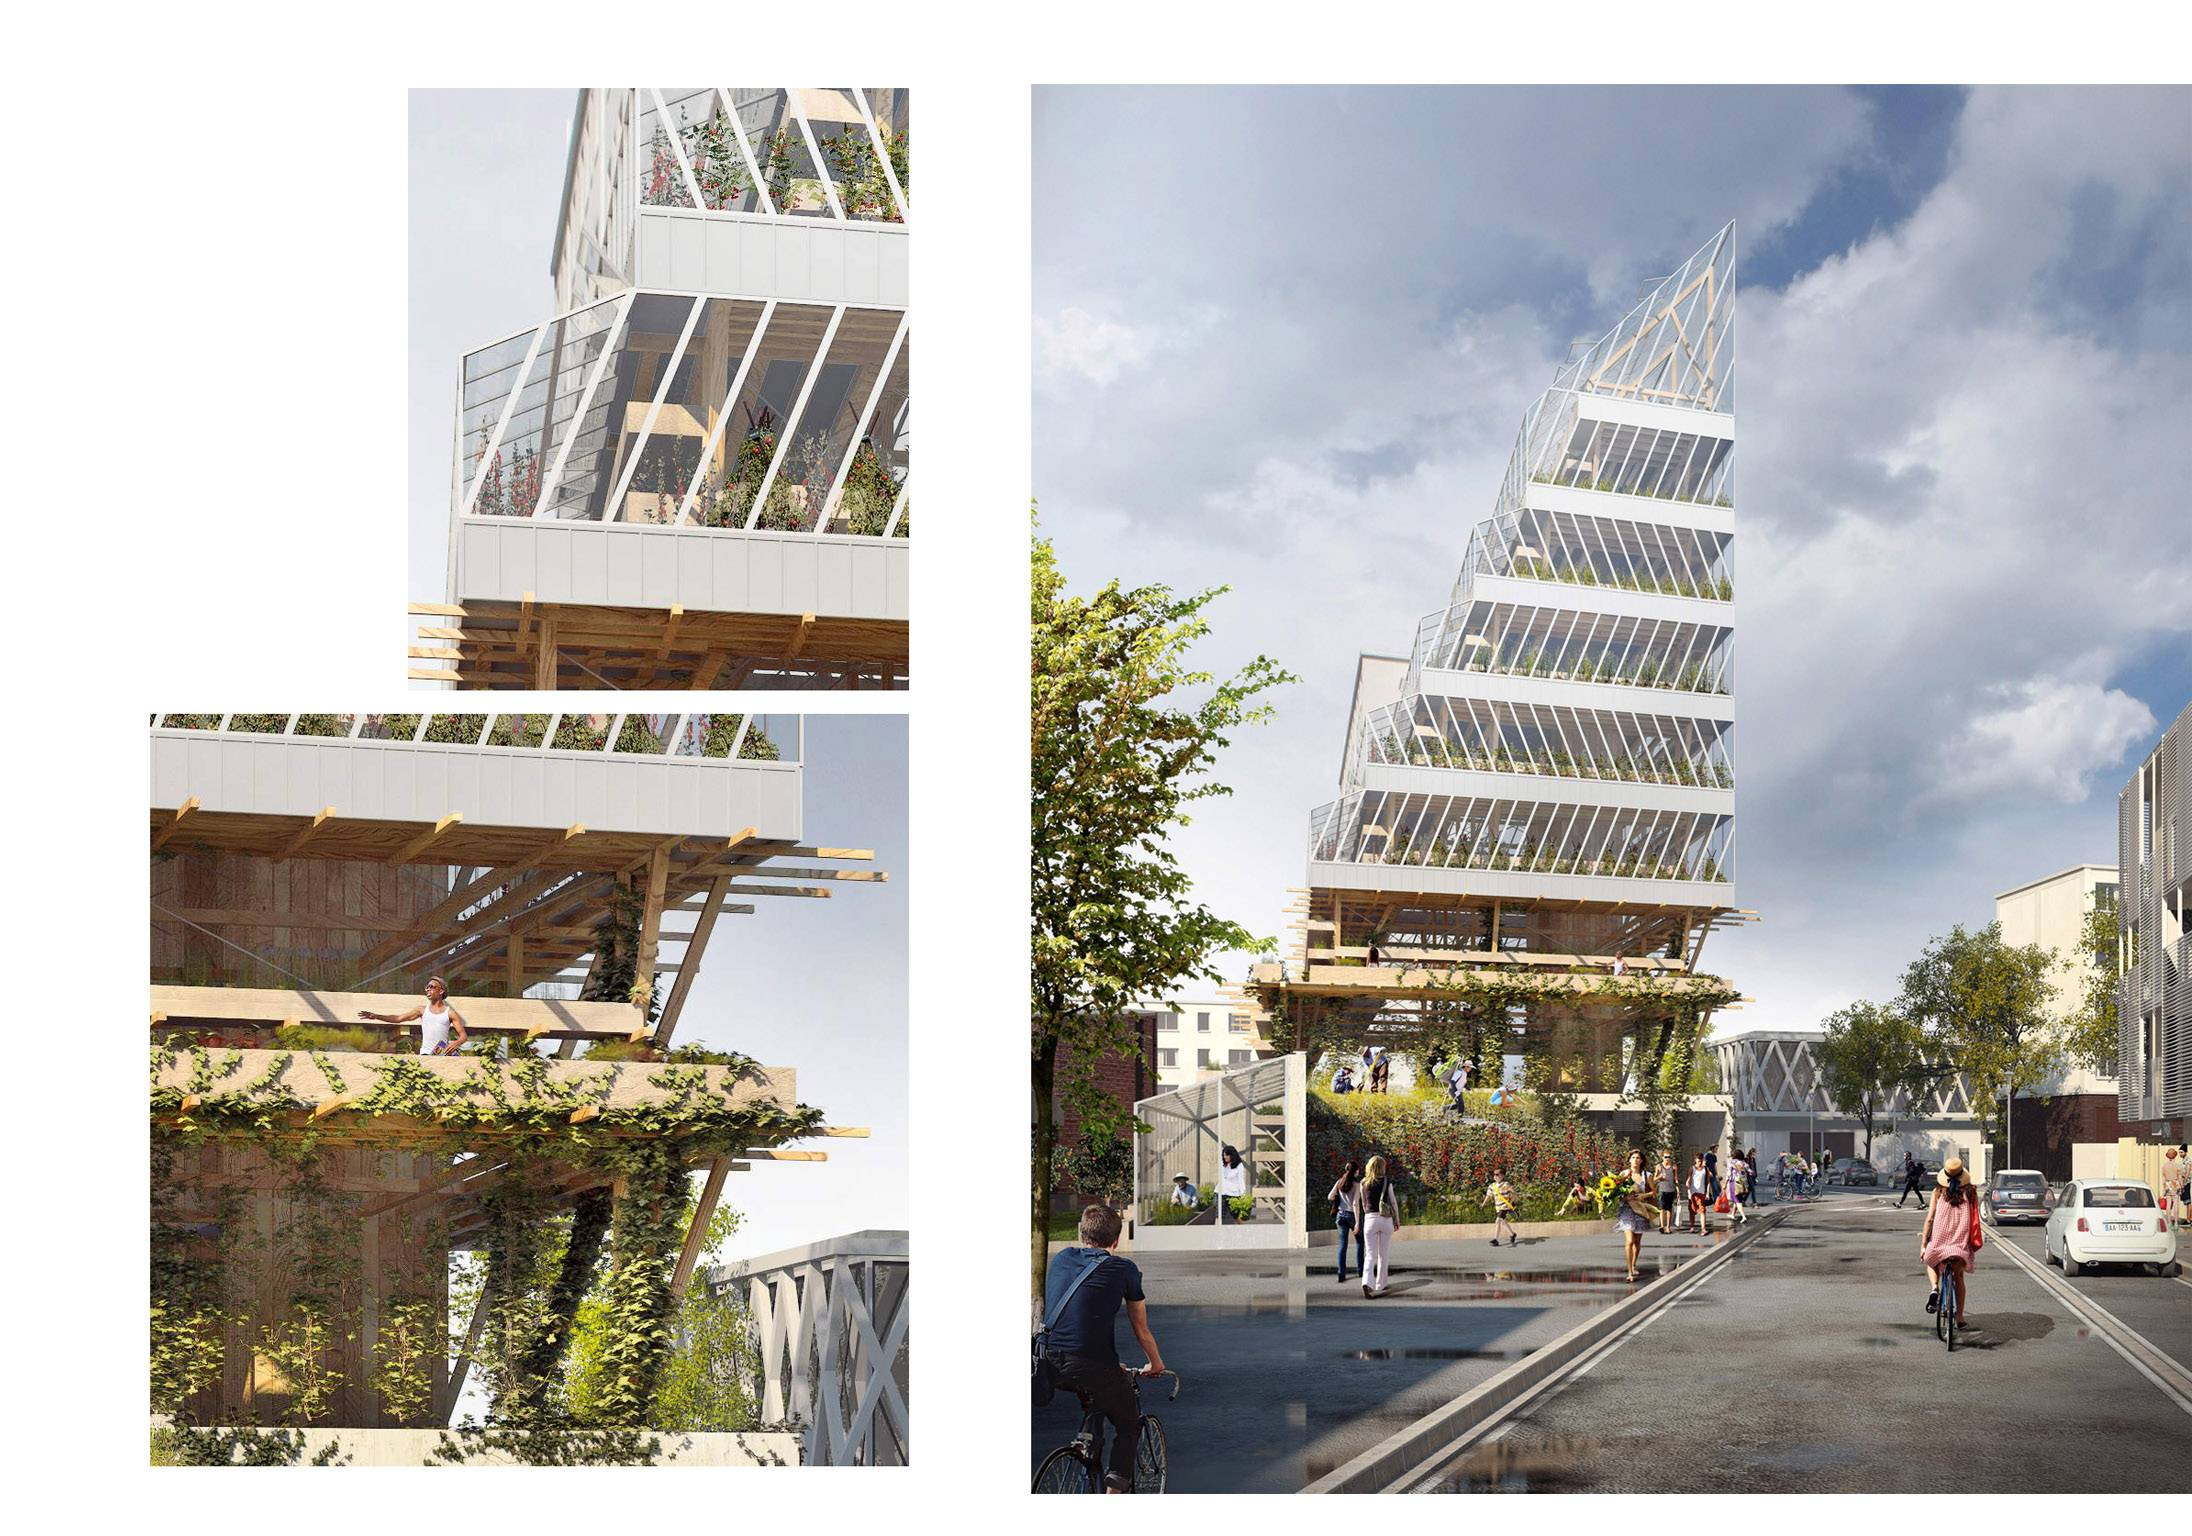 Agriculture meets architecture in France's urban farm ...